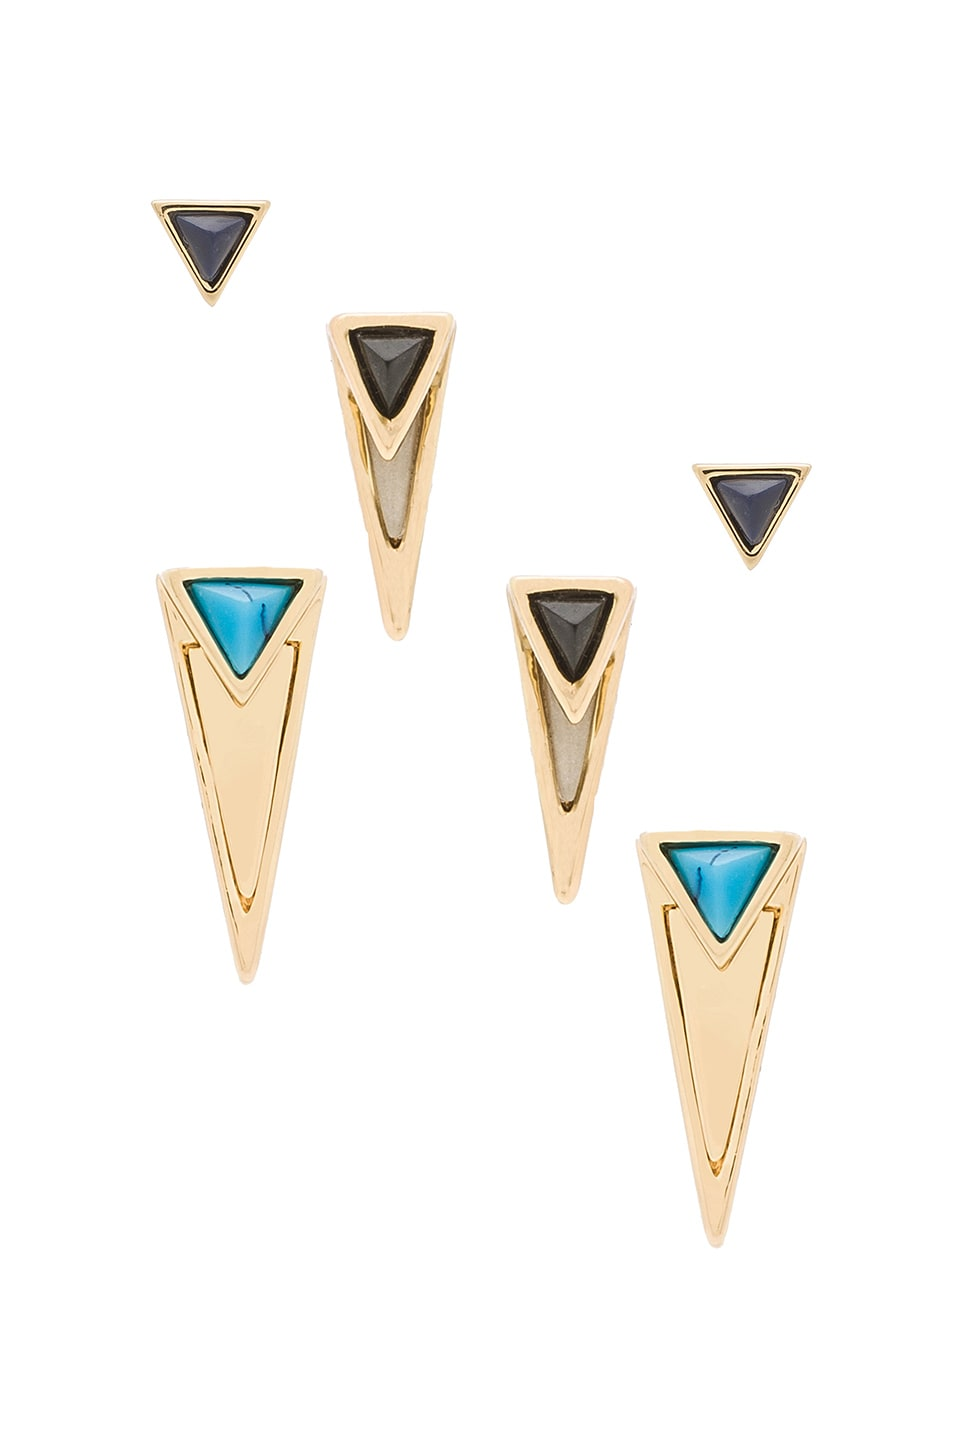 House of Harlow 1960 House of Harlow Triangle Triad Stud Set in Black & Pearl & Turquoise